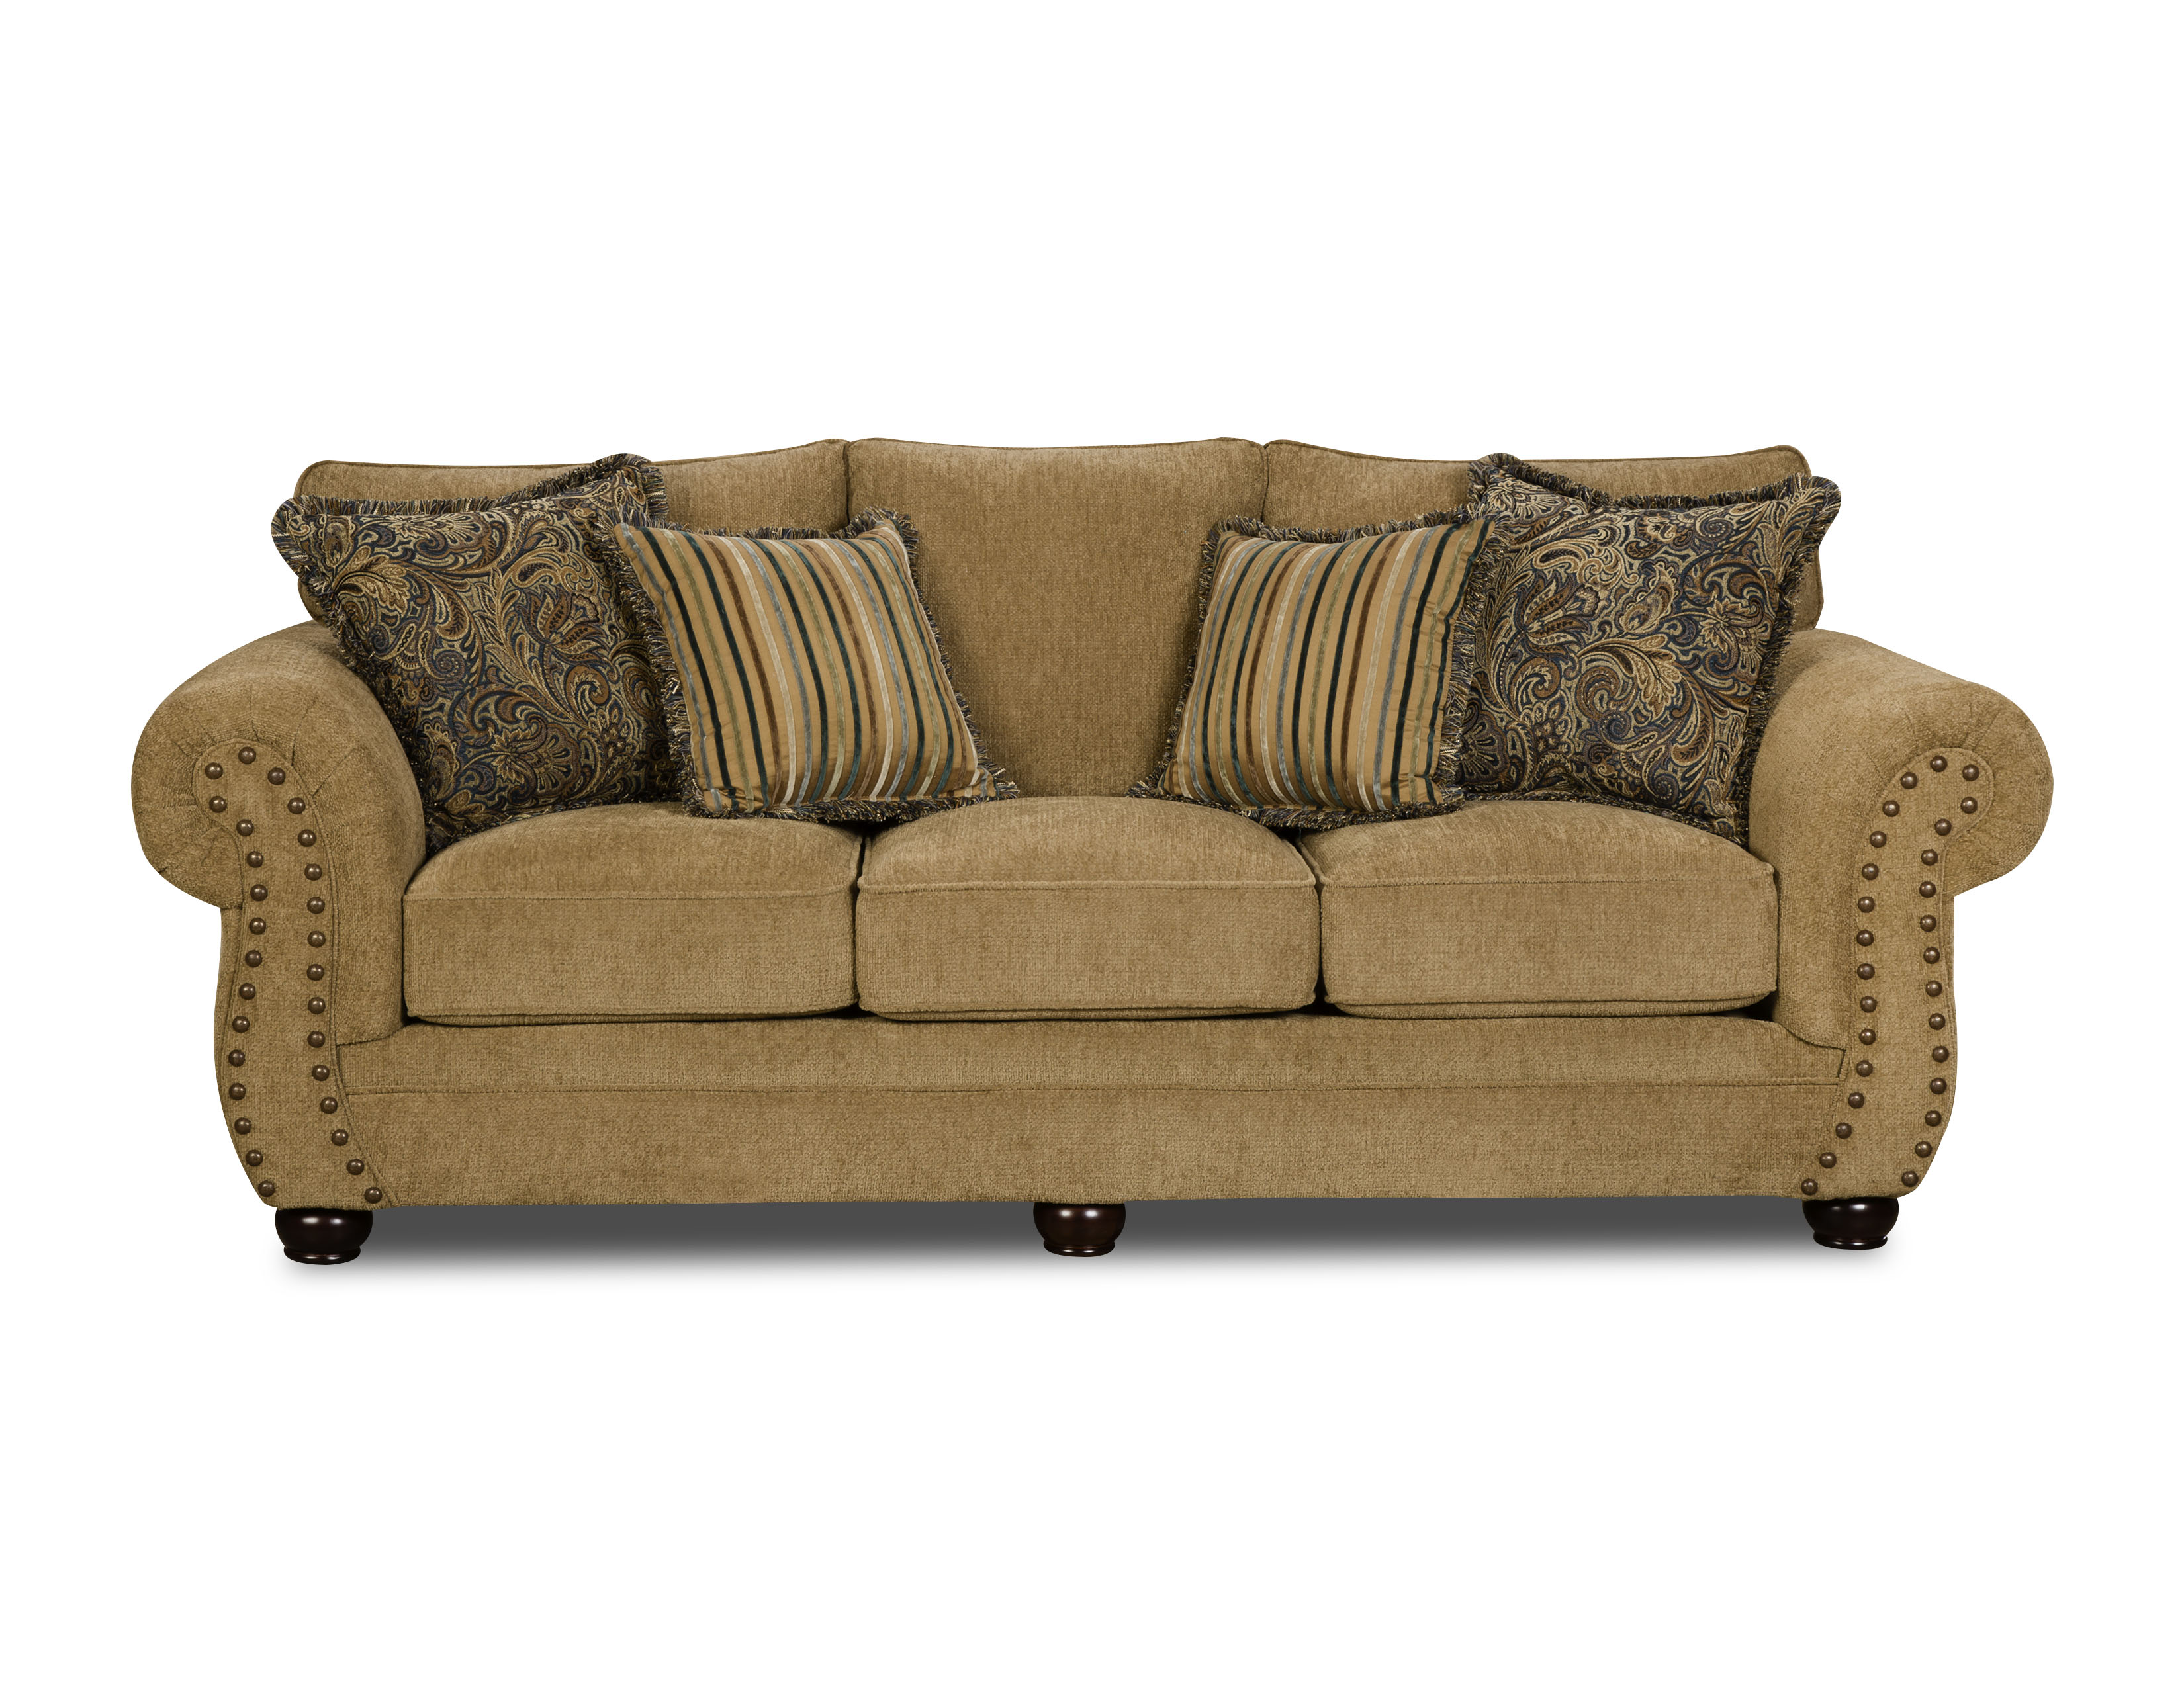 sears outlet bean bag chairs low back beach chair sofas 5034 br wisc sofa wisconsin chocolate